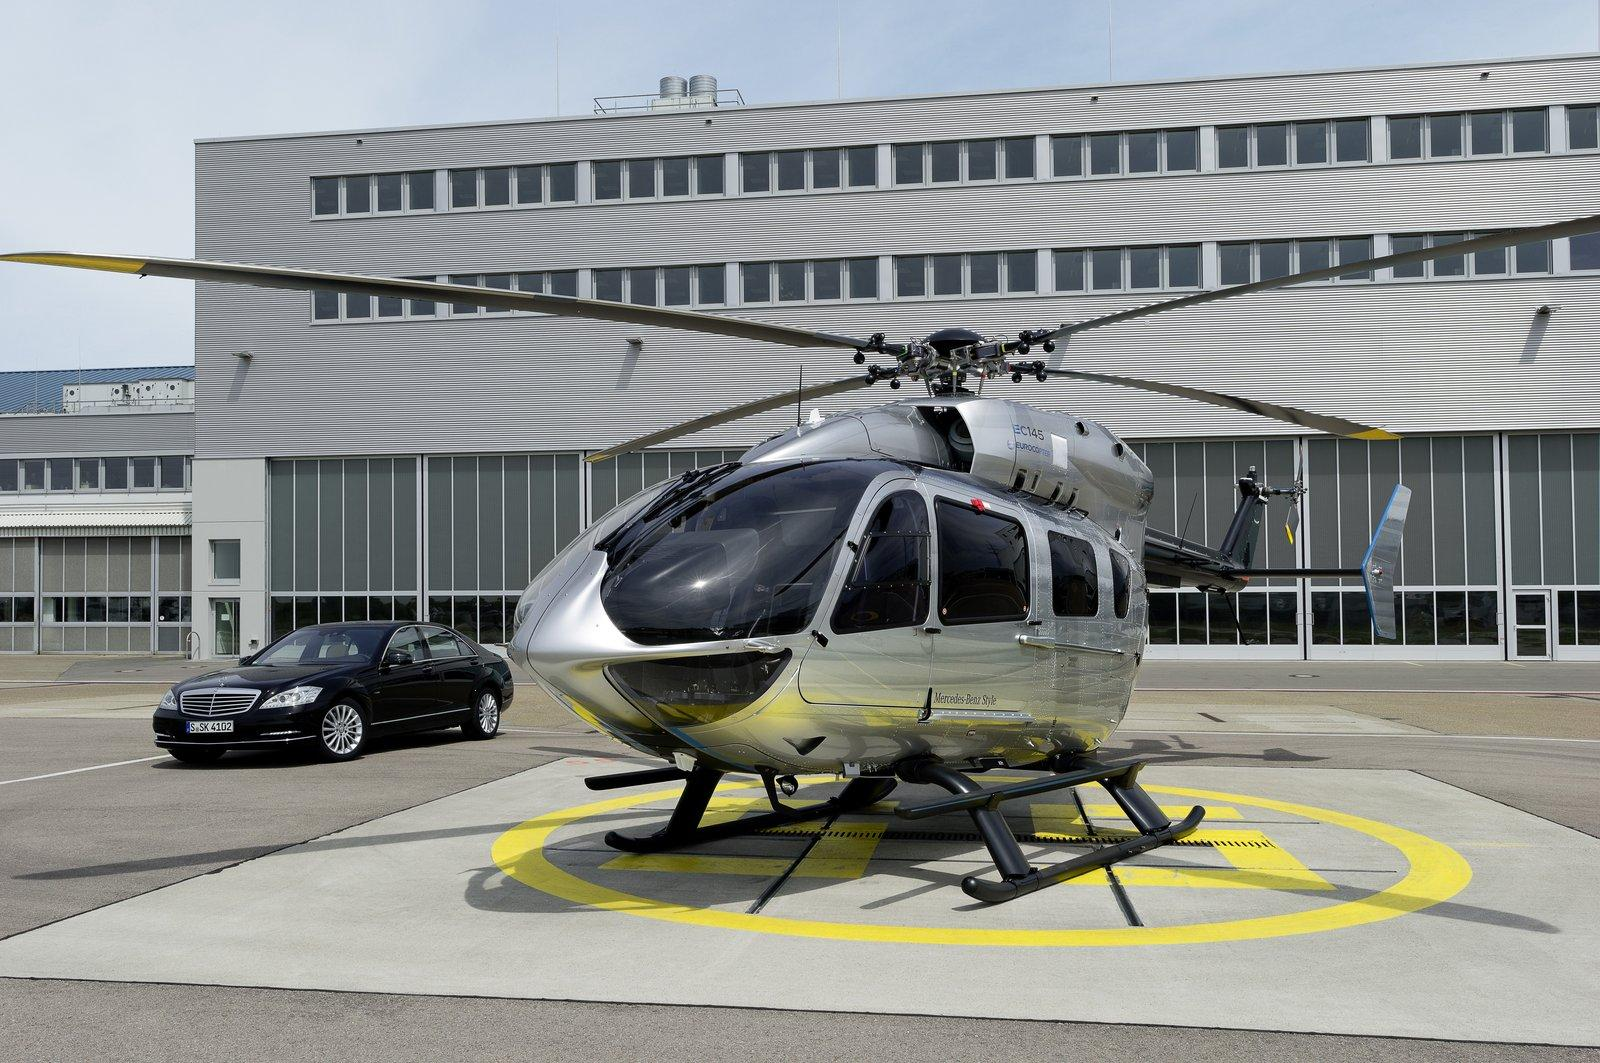 Eurocopter ec145 by mercedes benz 2 WHEN EURO COPTER AND MERC BENZ  JOIN HANDS